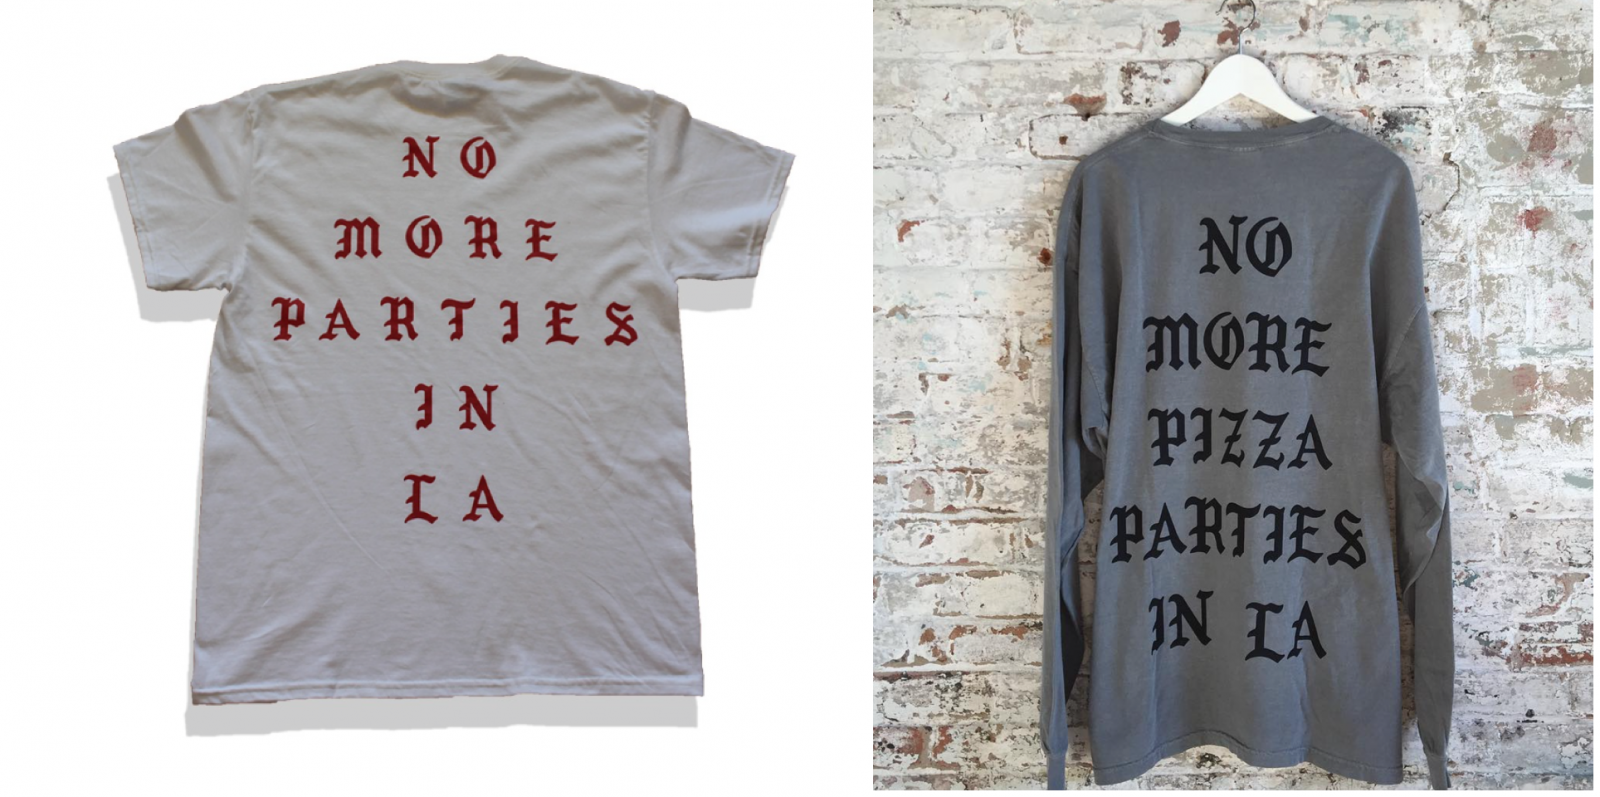 Kanye West's t-shirt (left) & Freedman's t-shirt (right)